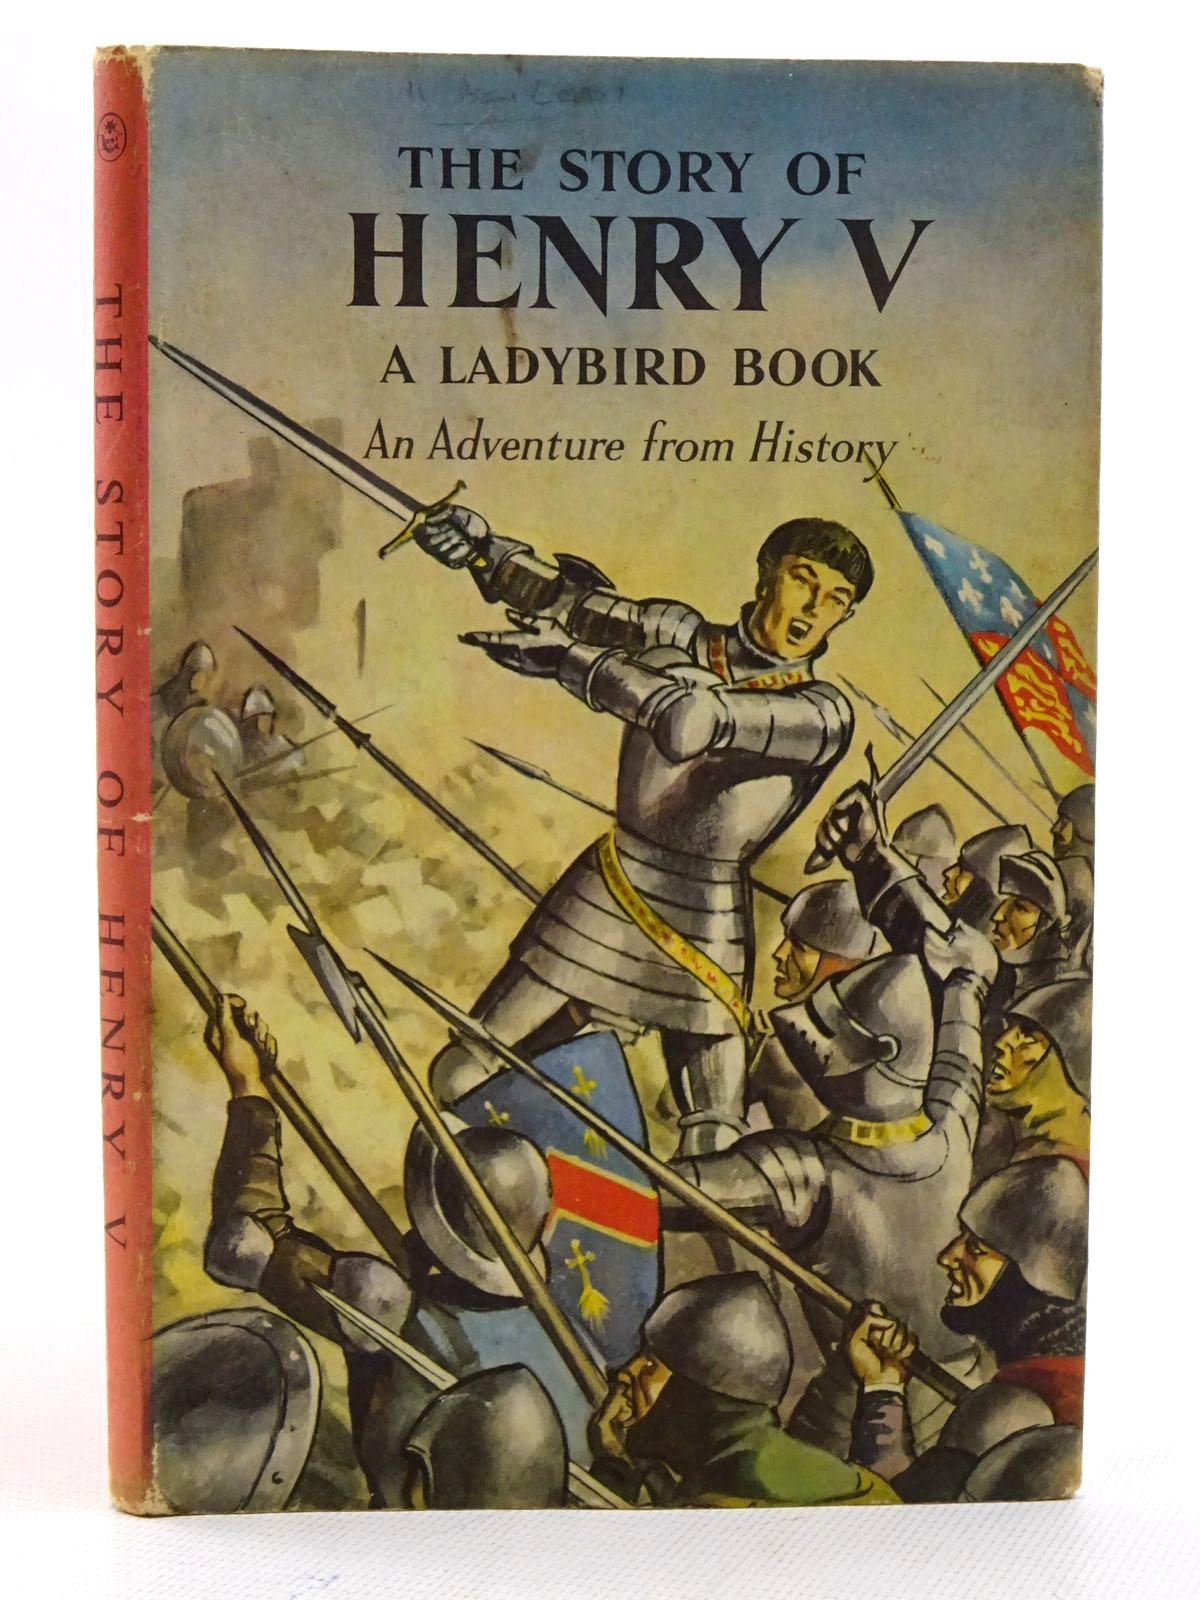 Photo of THE STORY OF HENRY V written by Peach, L. Du Garde illustrated by Kenney, John published by Wills & Hepworth Ltd. (STOCK CODE: 1610635)  for sale by Stella & Rose's Books